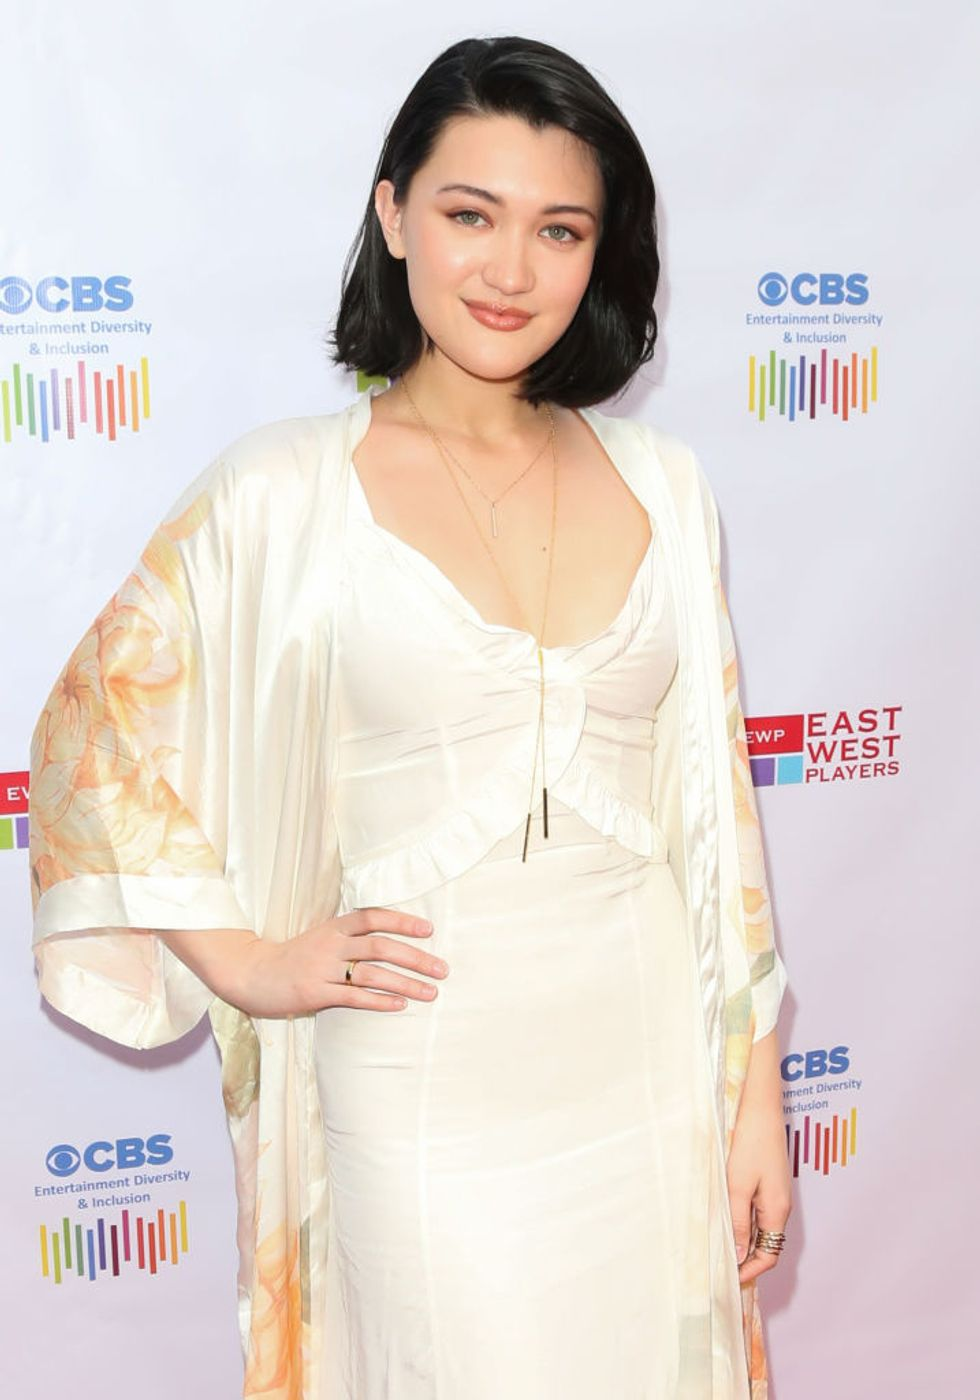 Actress Isa Briones in a yellow silk dress at a CBS Entertainment, Diversity & Inclusion event.